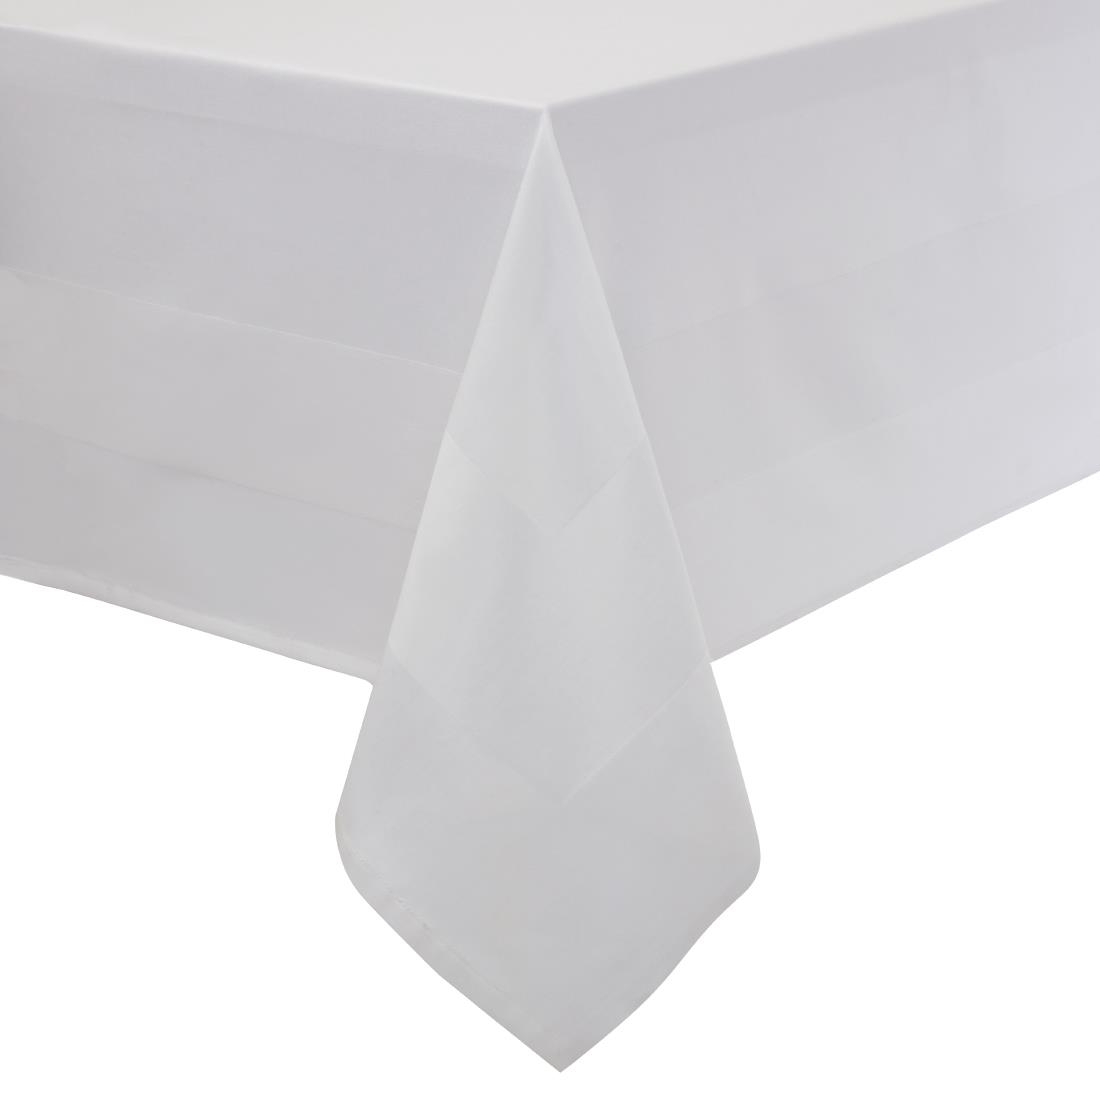 Image of Mitre Luxury Satin Band Tablecloth 1780 x 2740mm